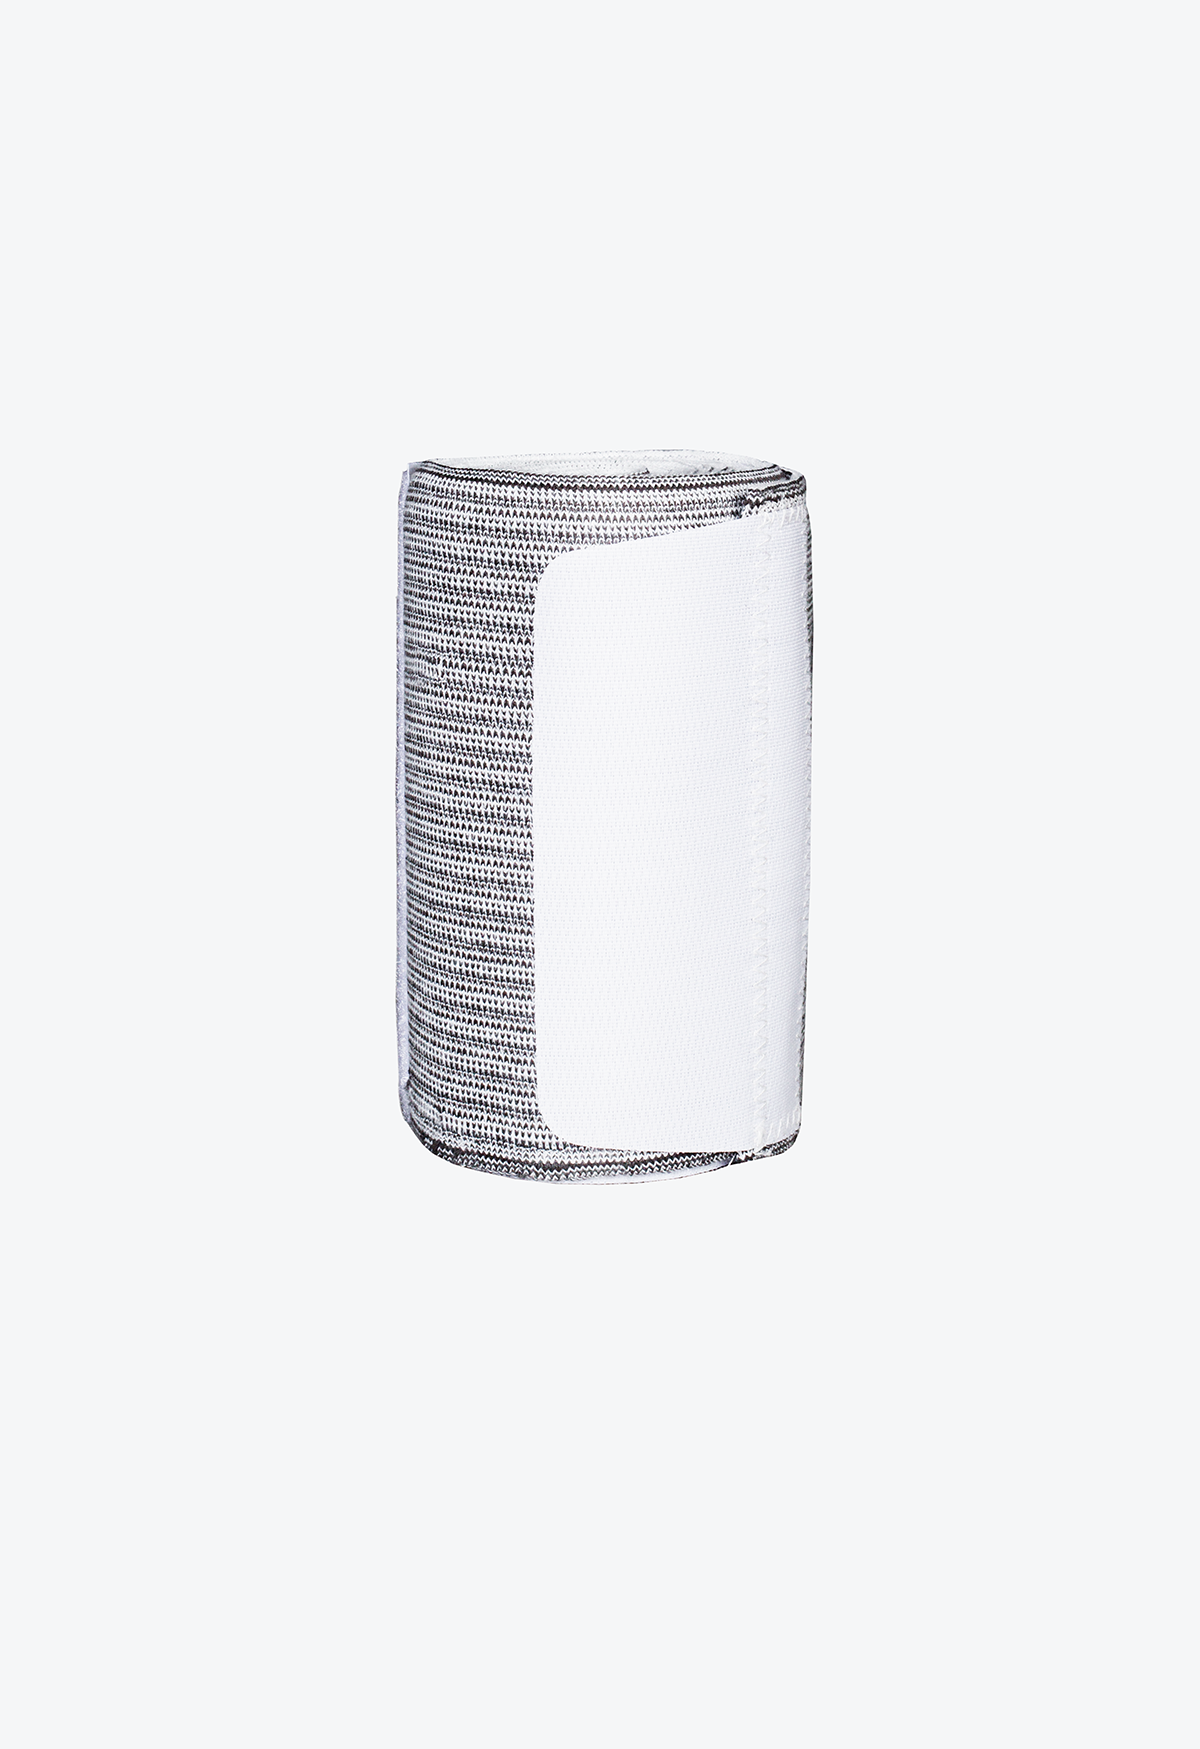 Incrediwear Bandage Wrap